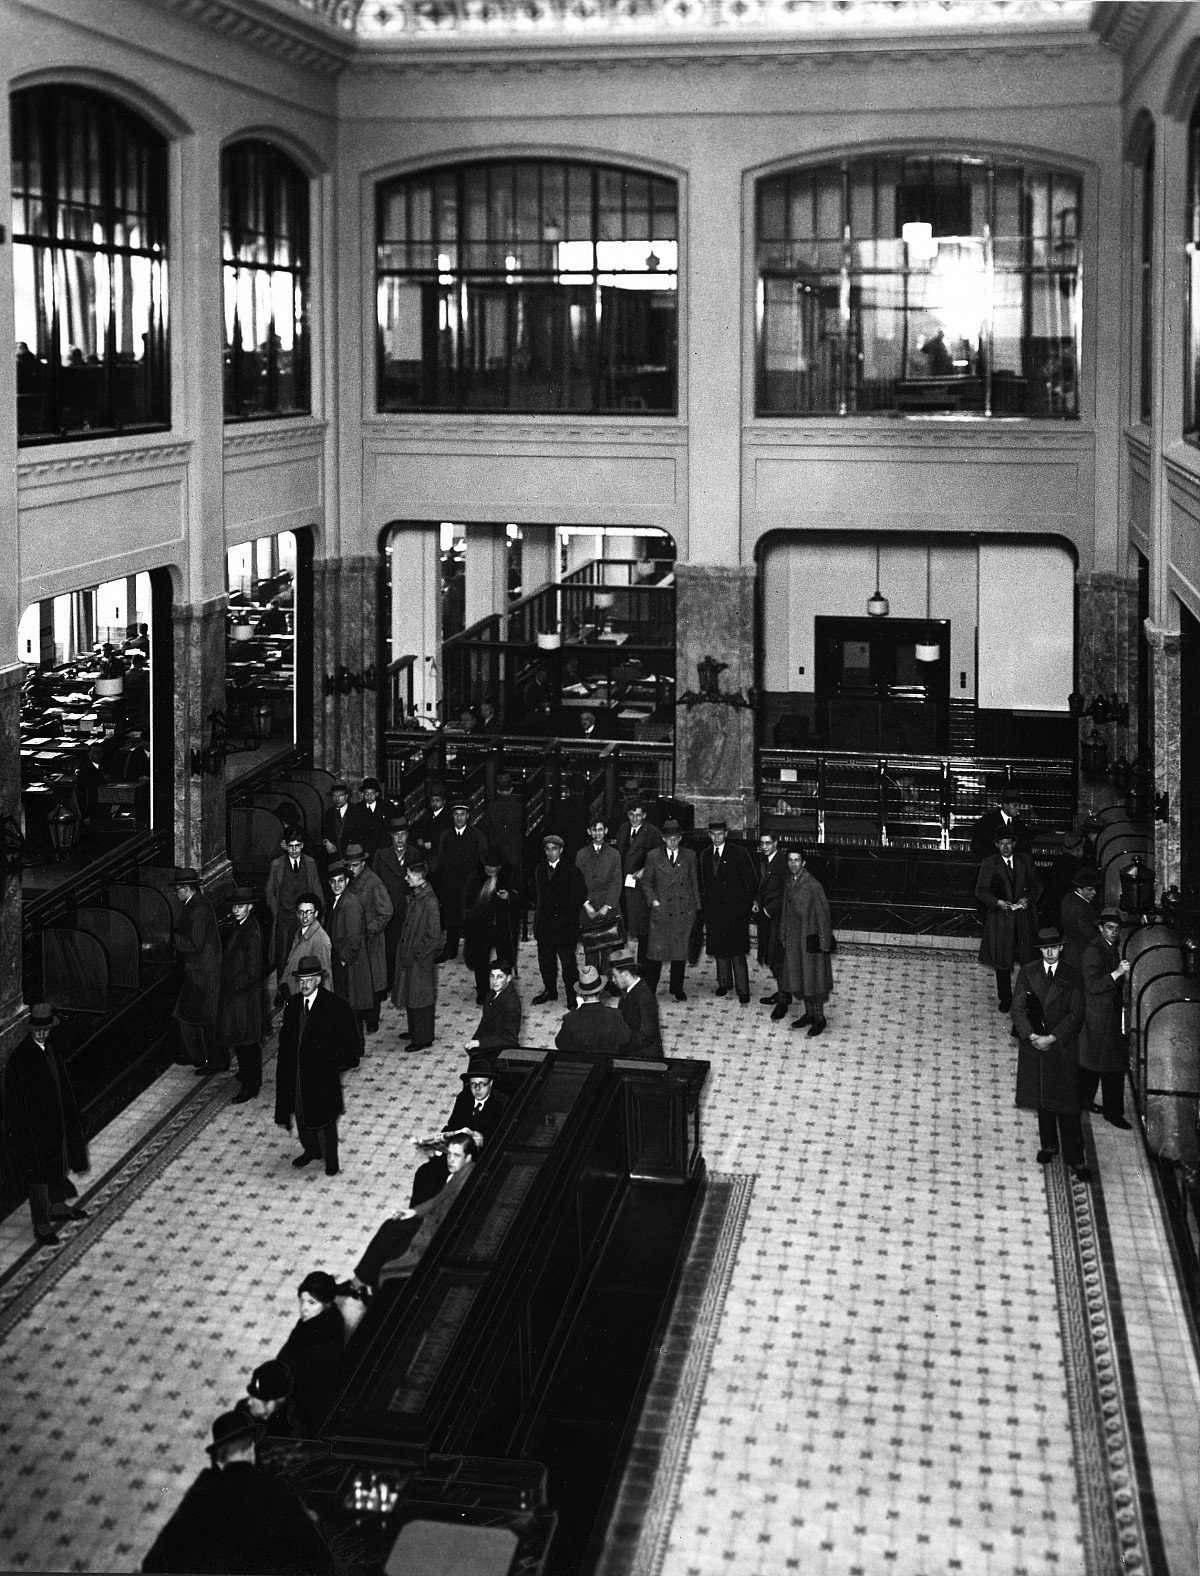 The large central bank hall. Circa 1932.